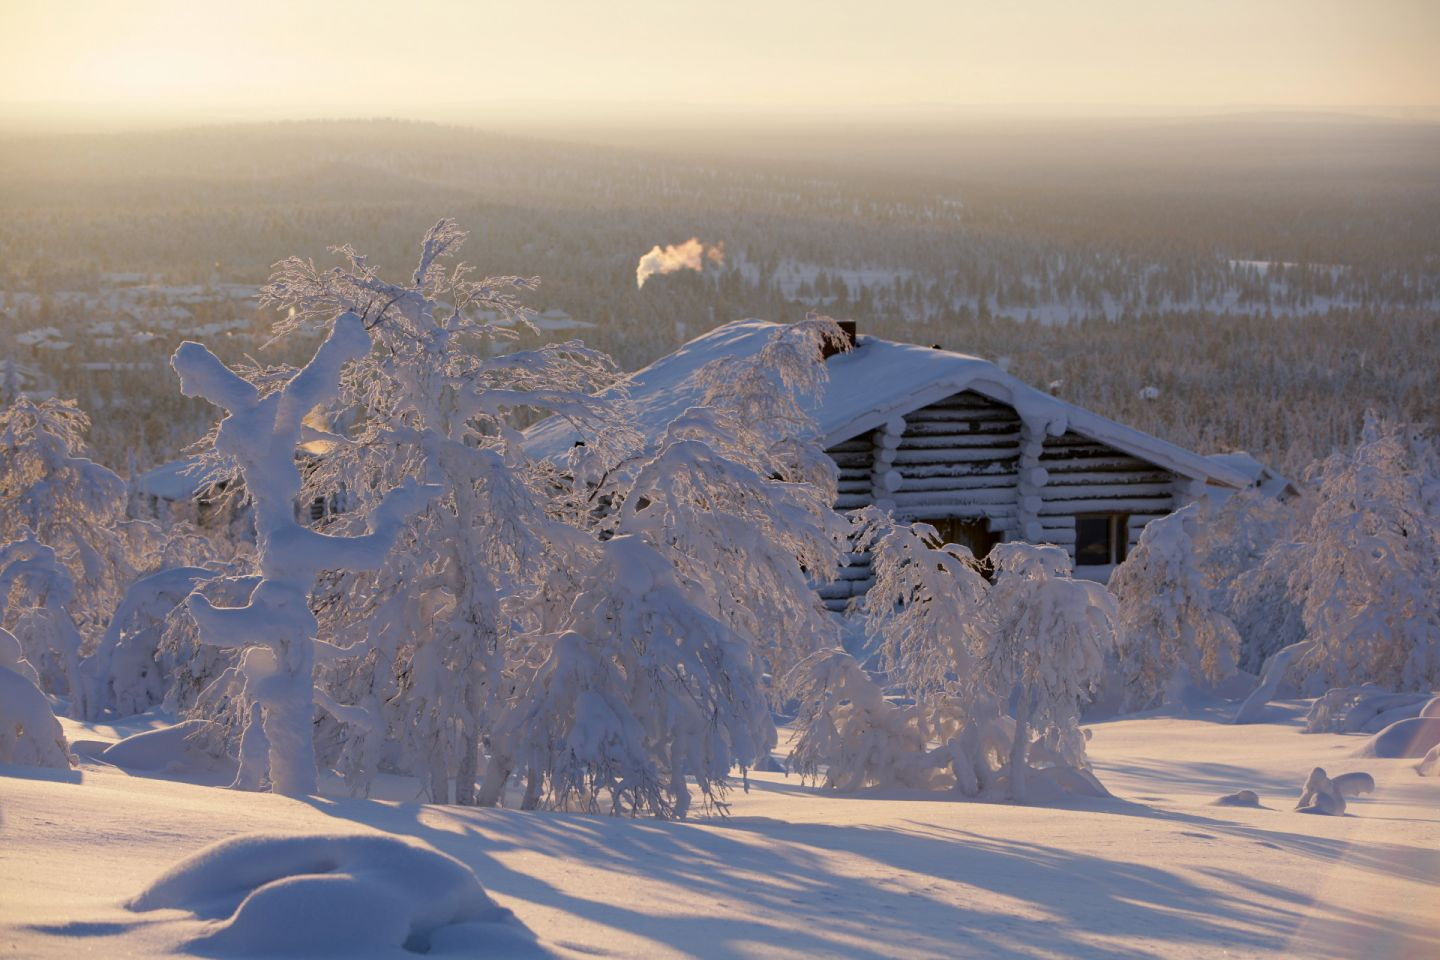 A snowy winter day in Finnish Lapland